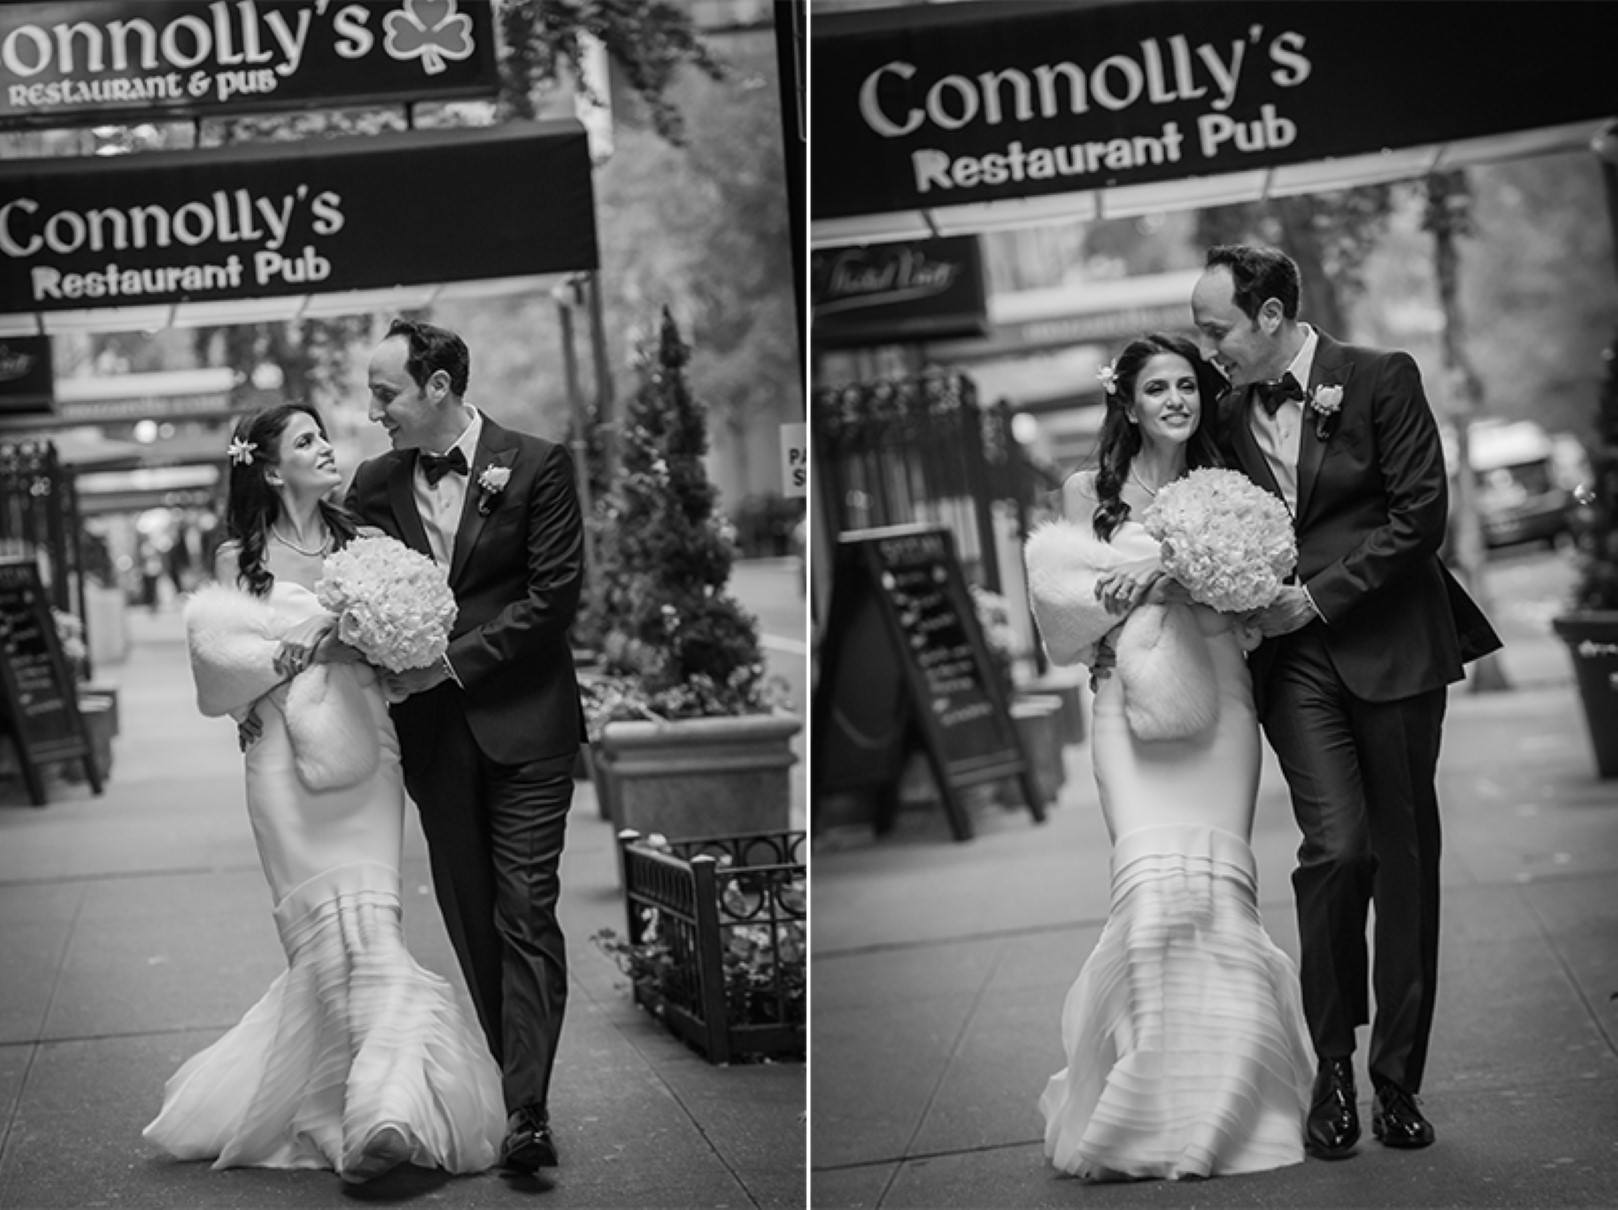 new york city wedding photography photographer photo groom bride emotional kiss black and white bw walking street